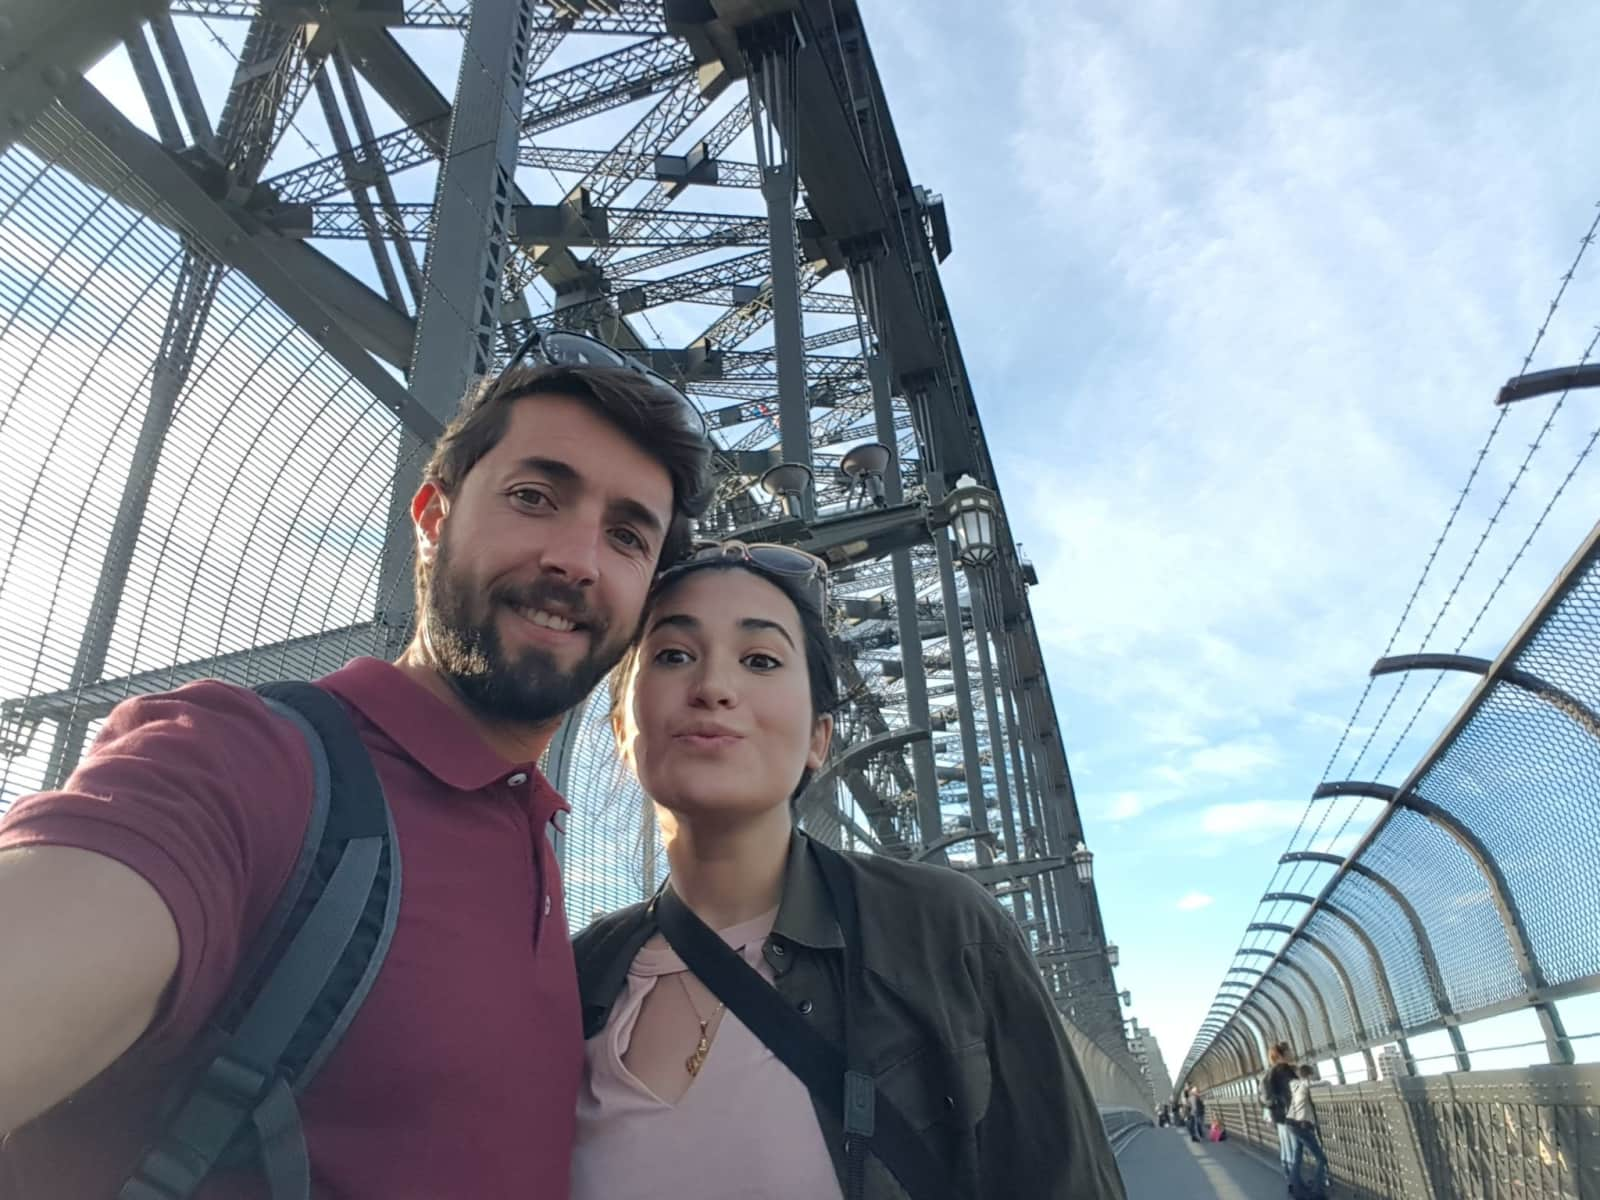 Antonio jesus & Nazaret from Brisbane, Queensland, Australia